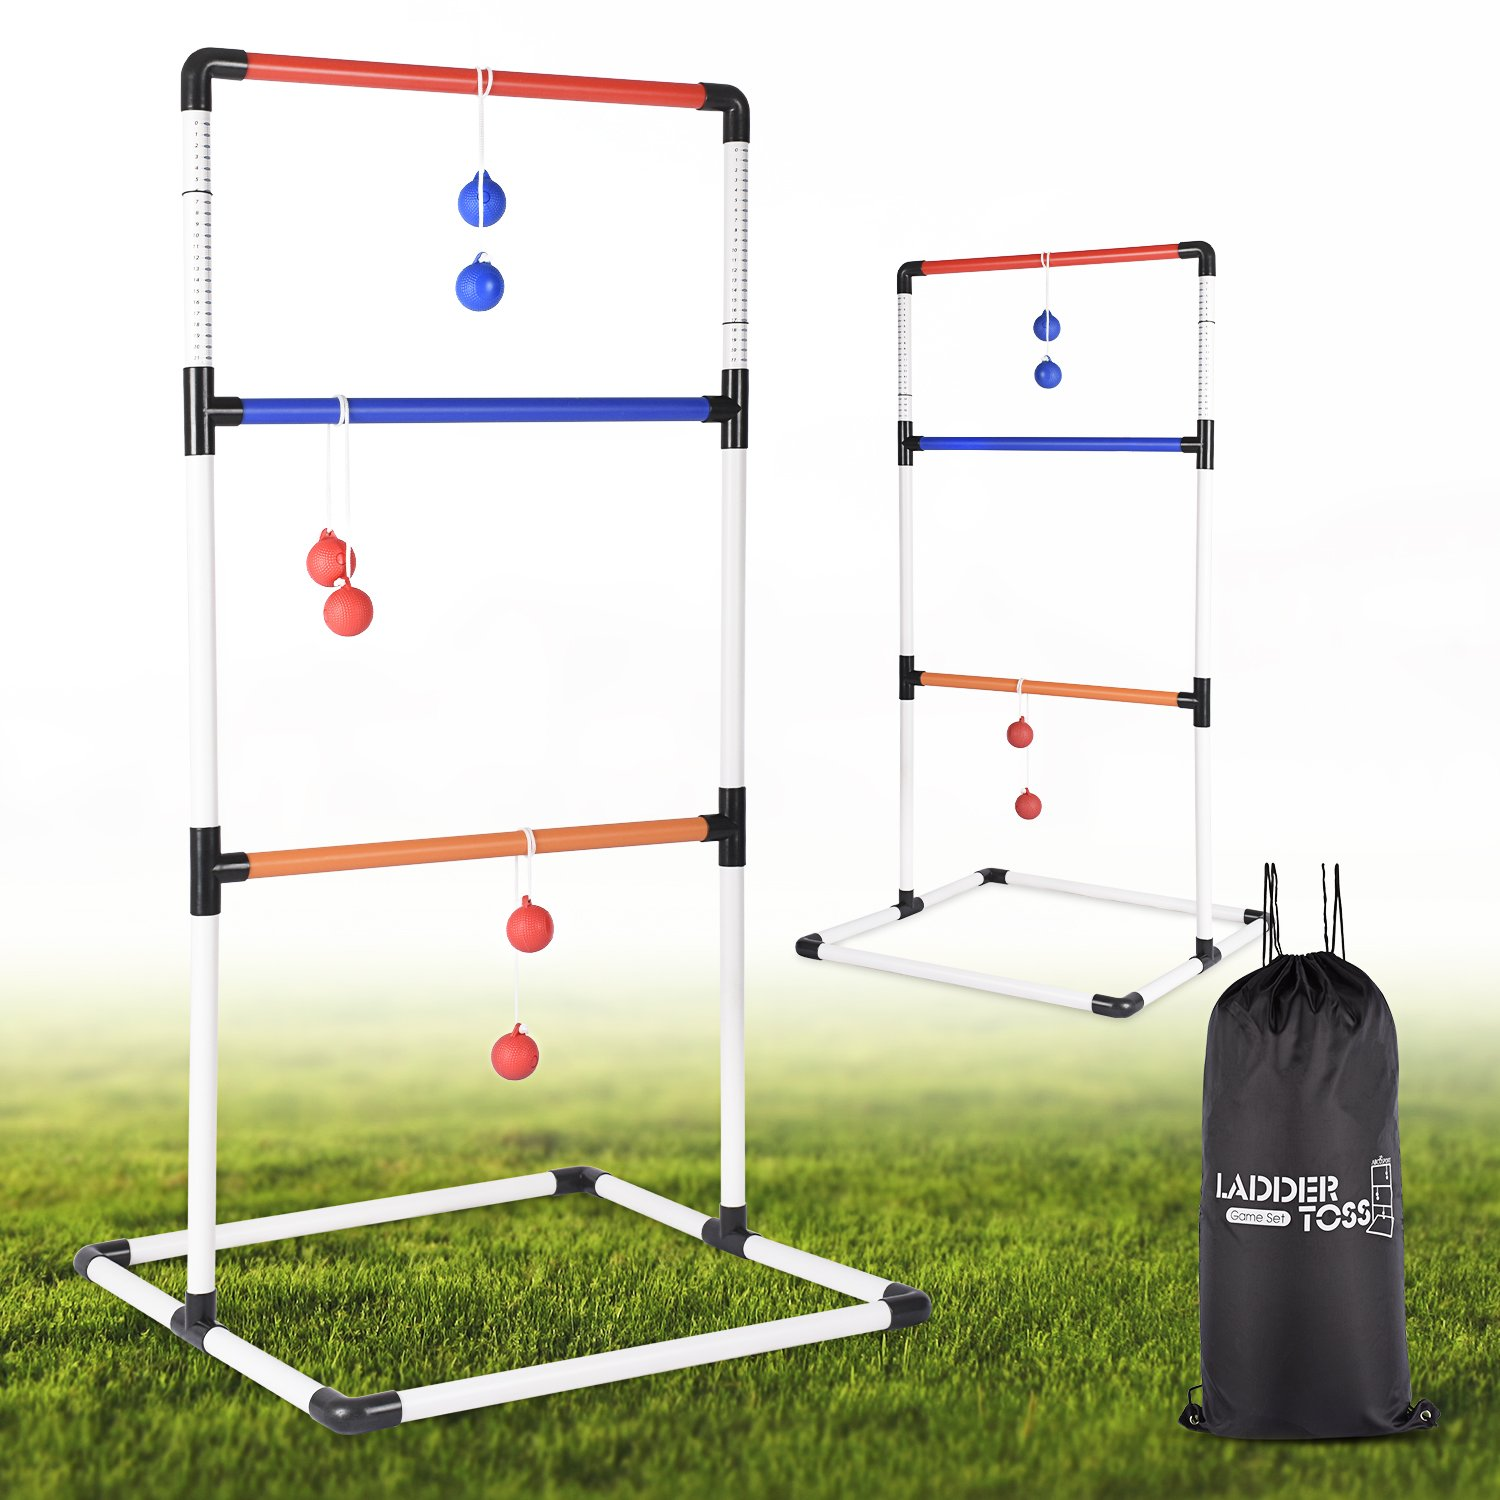 Ladder Toss Ball Game Set - Box Shaped Sturdy & Stable Base - 6 Toss Bolos with Thick Rope - Built-in Score Tracker - Ideal for Indoor/Outdoor Game - with Backpack Bag - Easy Setup - 2-4 Player Abco Tech ABC2182